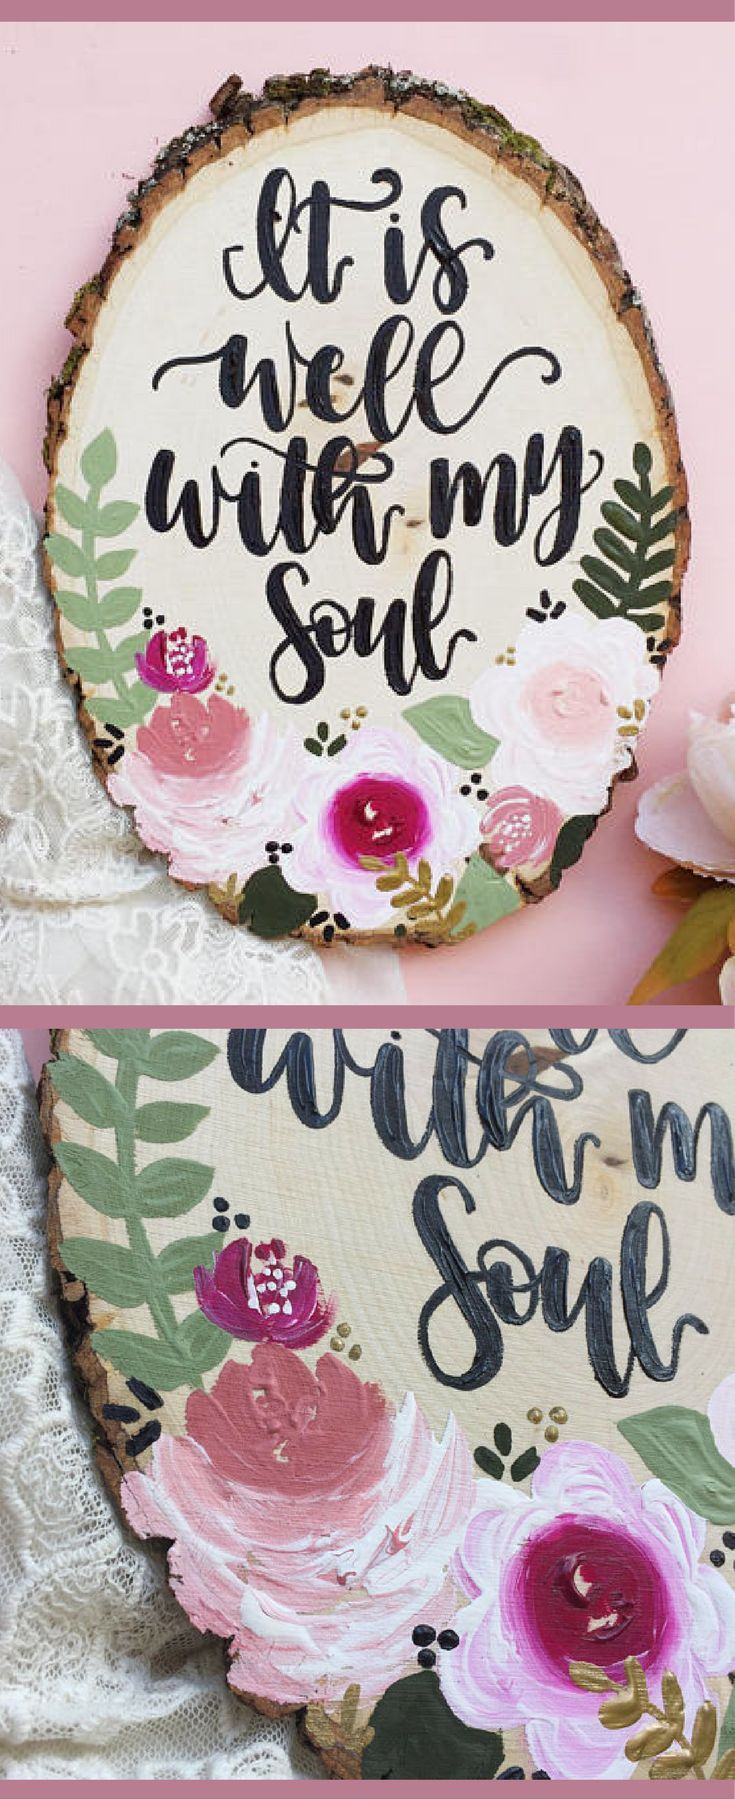 It is well with my soul hand painted floral wall art wood slice